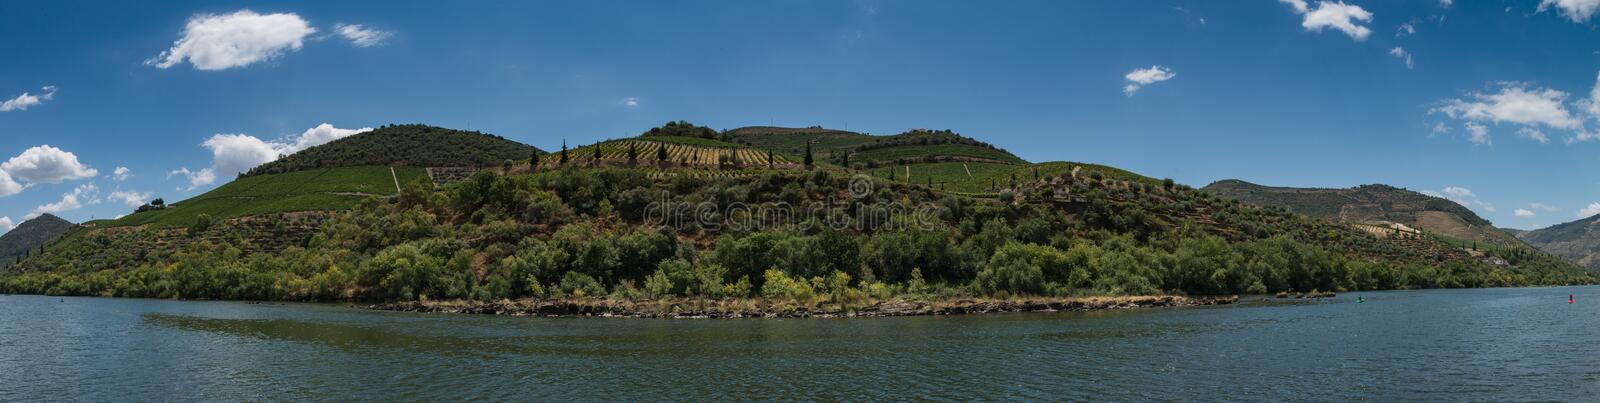 Vineyars in Douro Valley. Terraced vineyards in Douro Valley, Alto Douro Wine Region in northern Portugal, officially designated by UNESCO as World Heritage Site stock photo